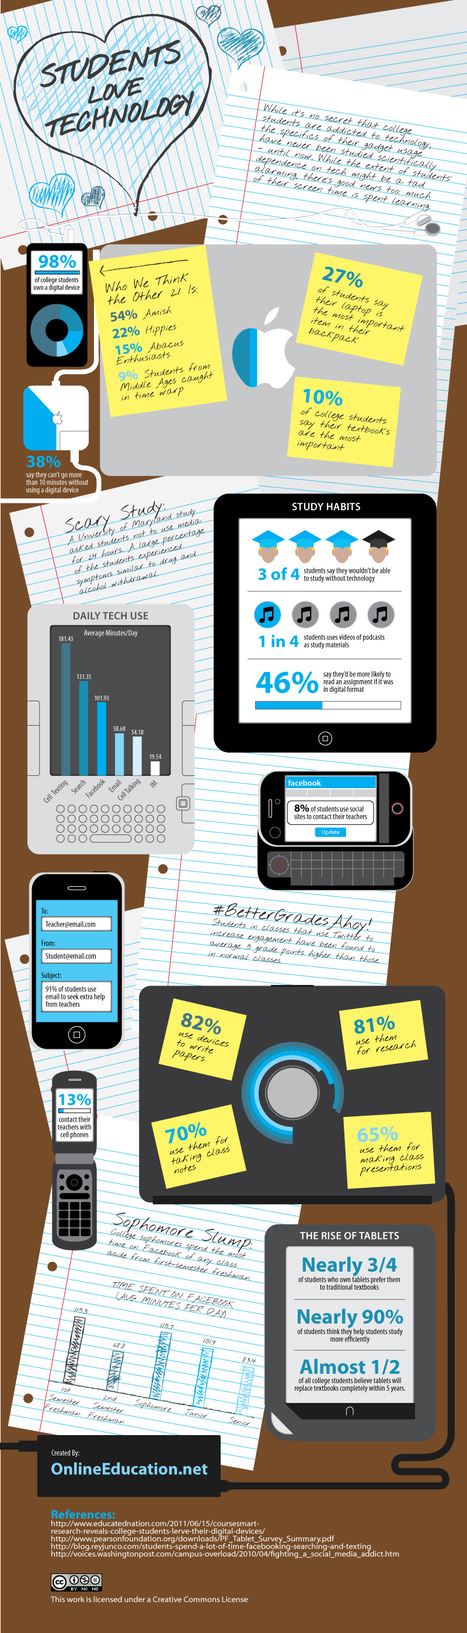 How Students Use Technology [INFOGRAPHIC] | English 2.0 | Scoop.it